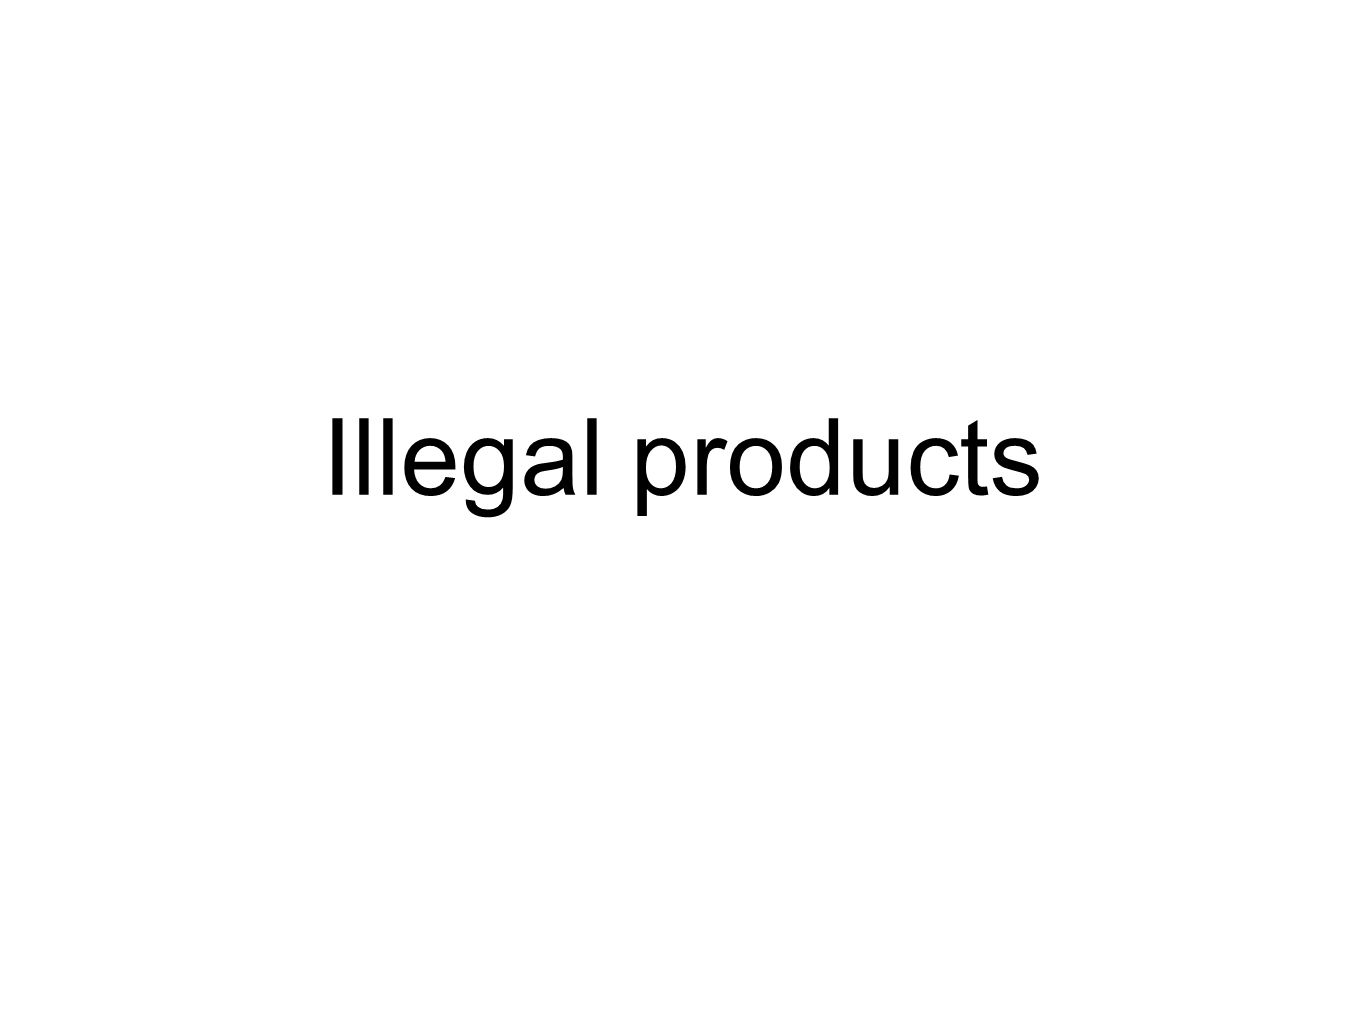 Illegal products